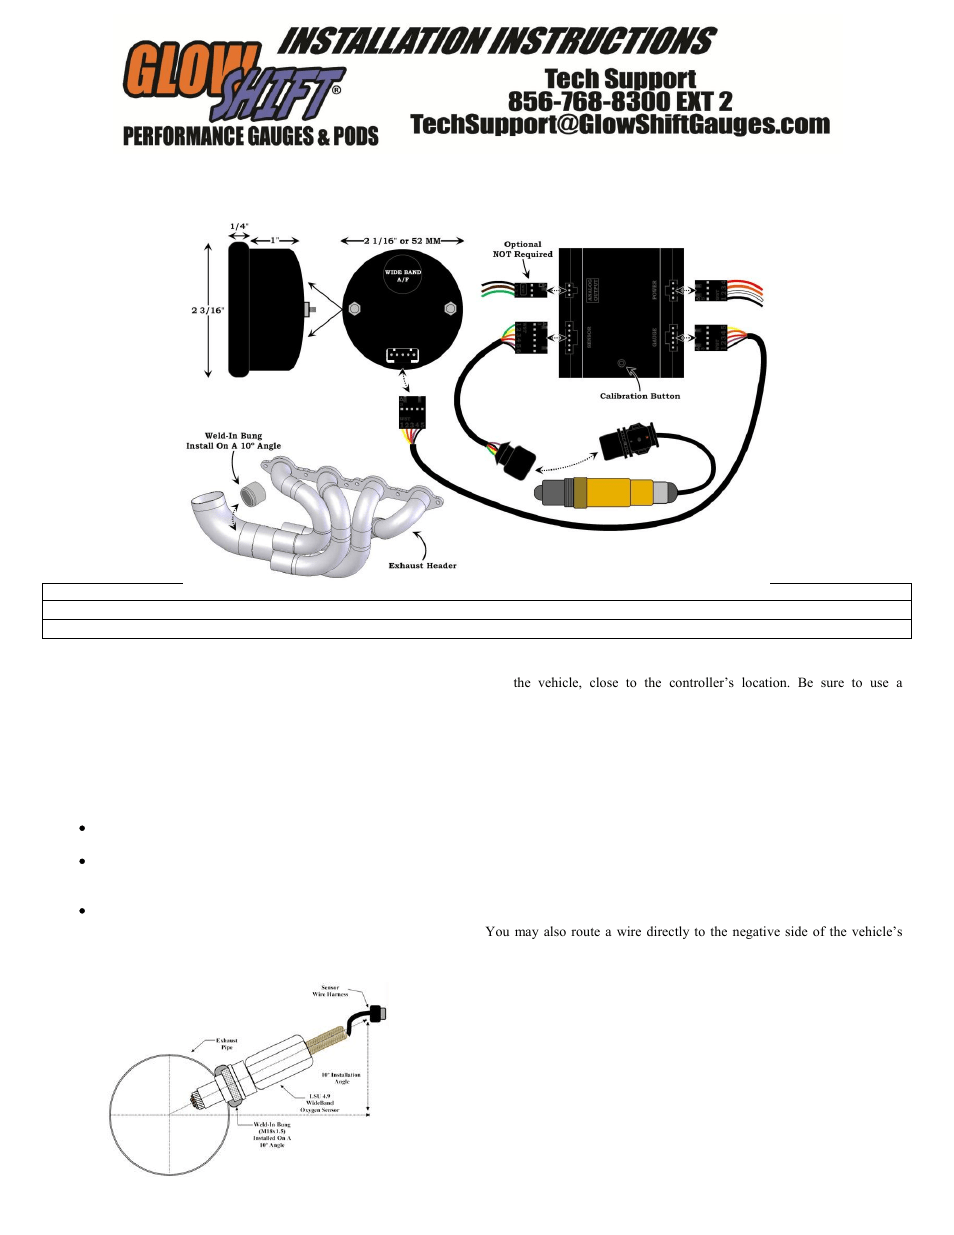 hight resolution of glowshift wiring diagram wiring diagram glowshift oil pressure gauge wire diagram glowshift gauge wiring diagram